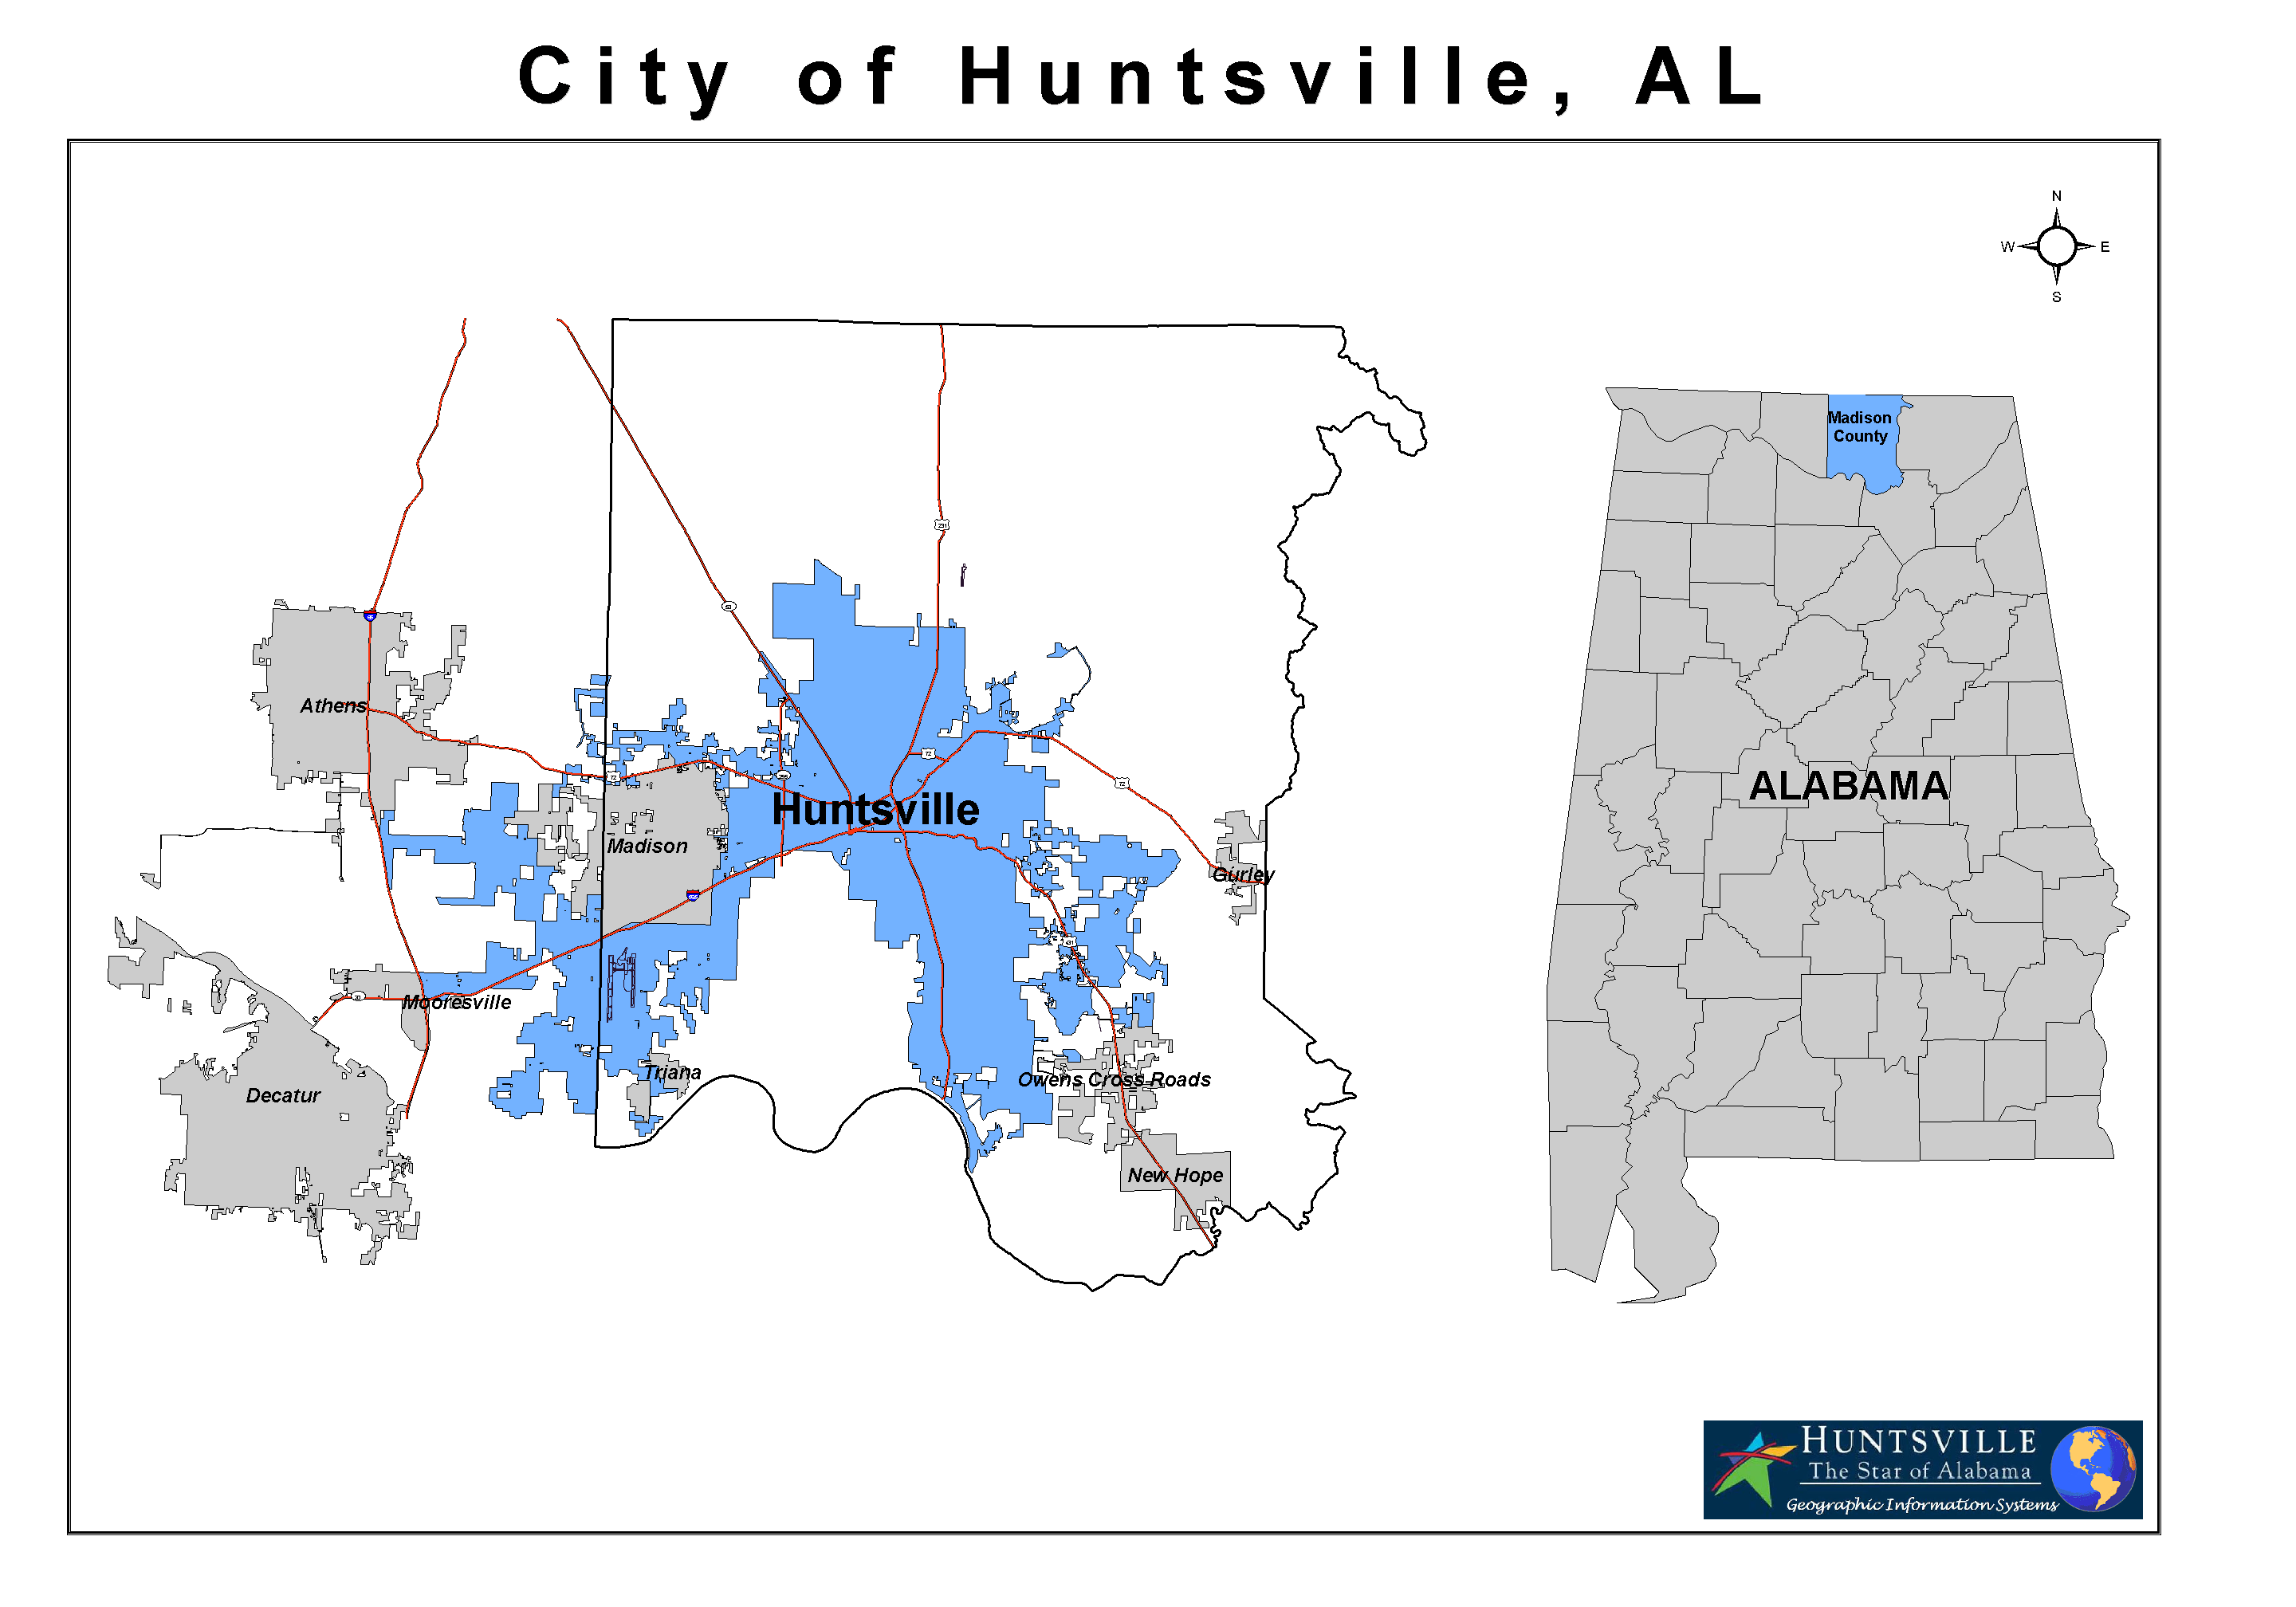 Madison County Alabama With Current Huntsville Corporate Limits Highlighted In Blue